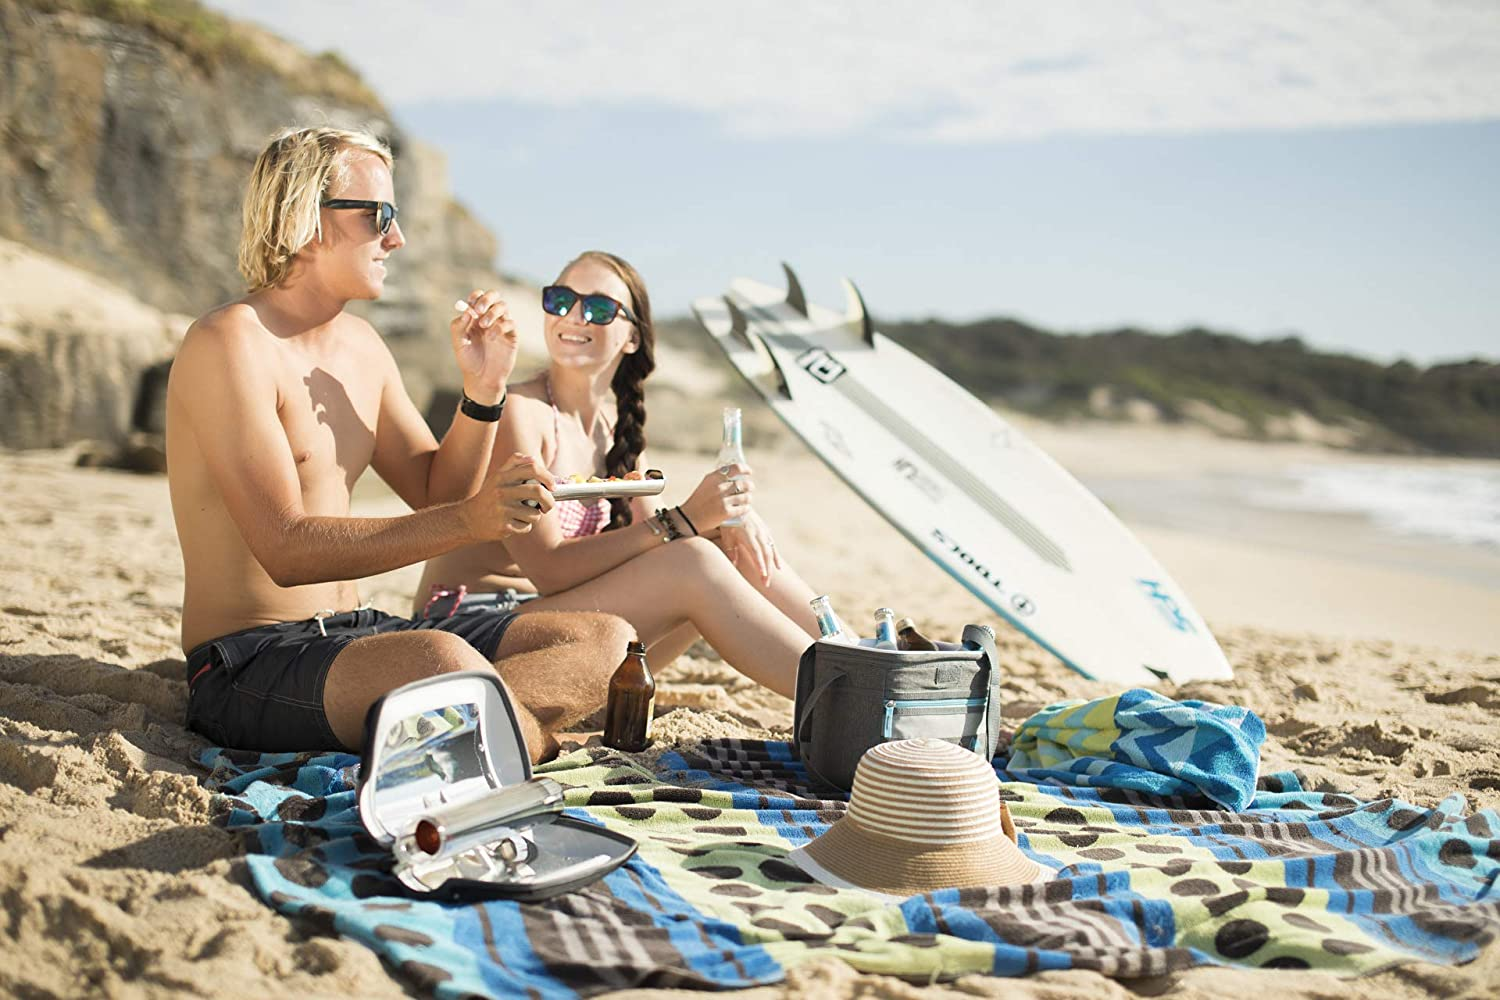 Perfect for Camping or Hiking GoSun Go Ultra-Portable Solar Cooker Heats Drinks and Bakes Food Weighs 2 lbs